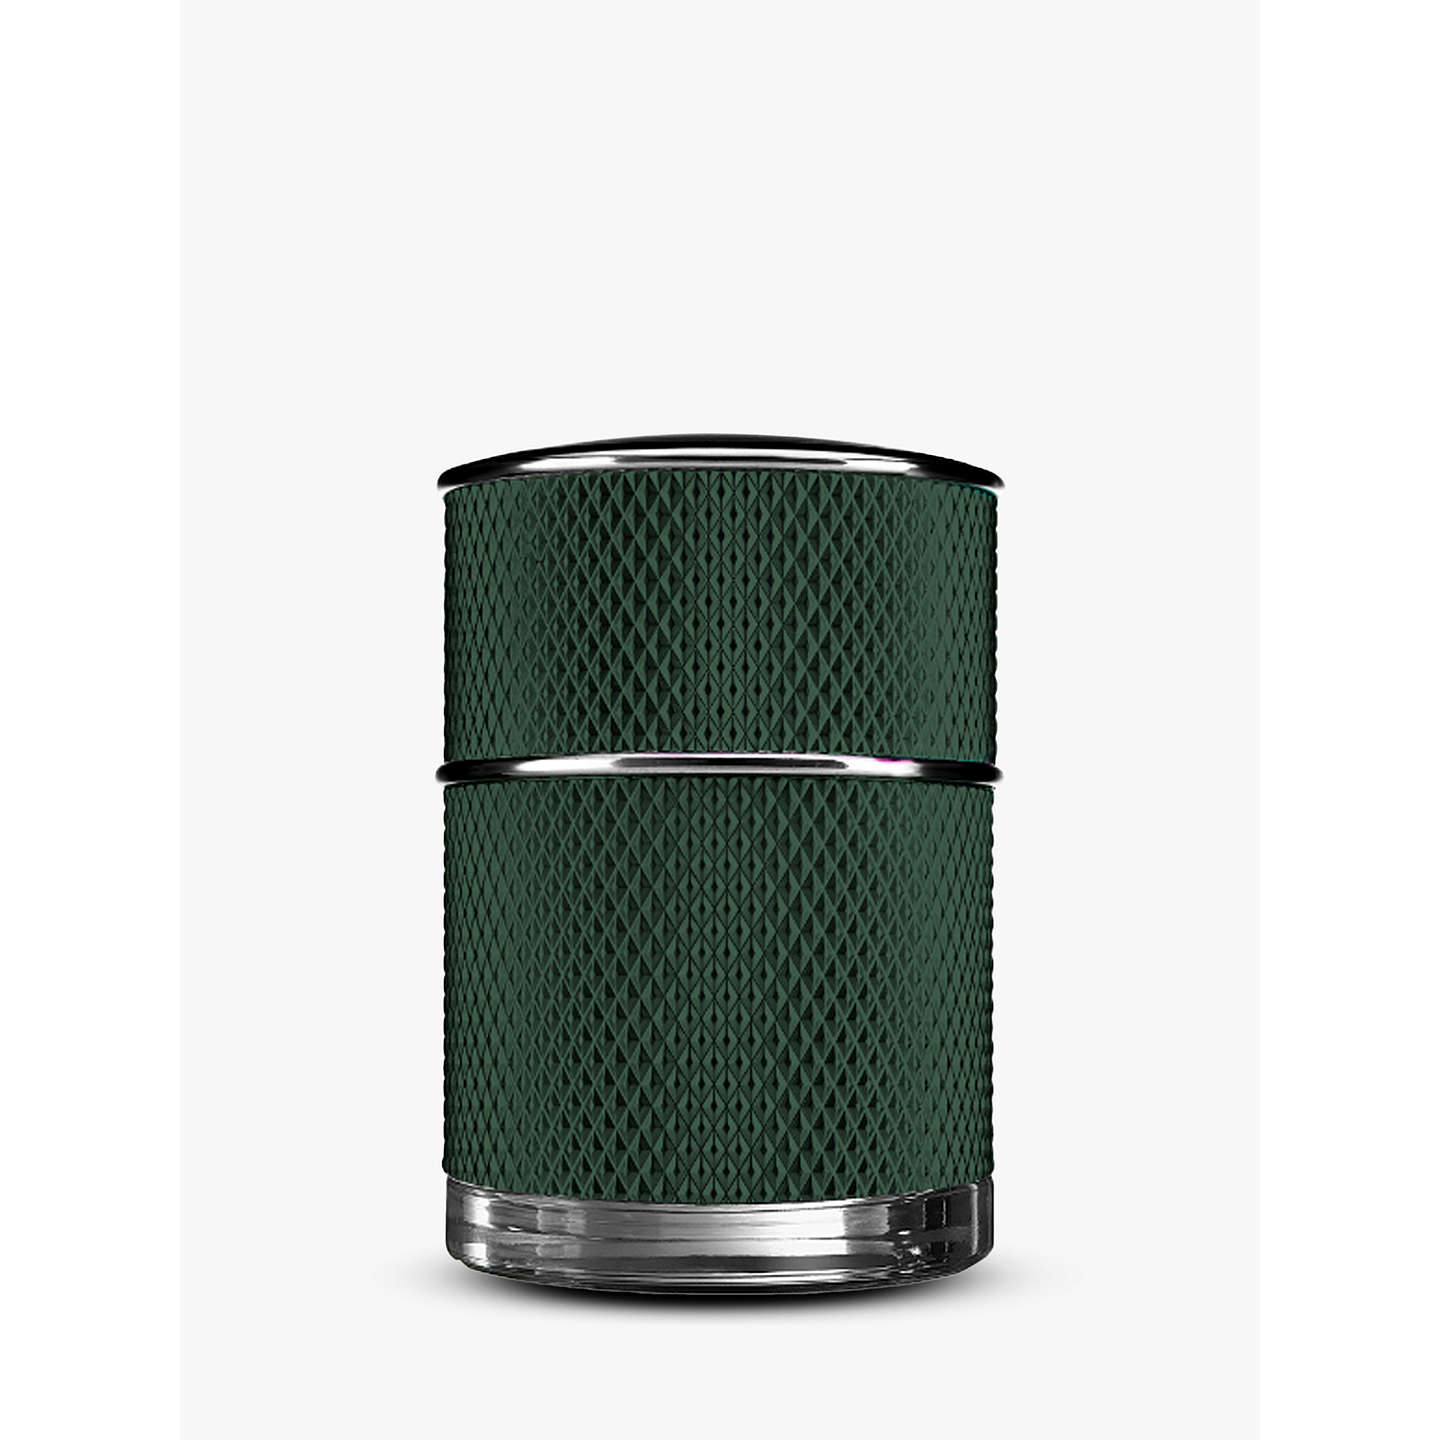 BuyDunhill ICON Racing Eau de Parfum, 50ml Online at johnlewis.com